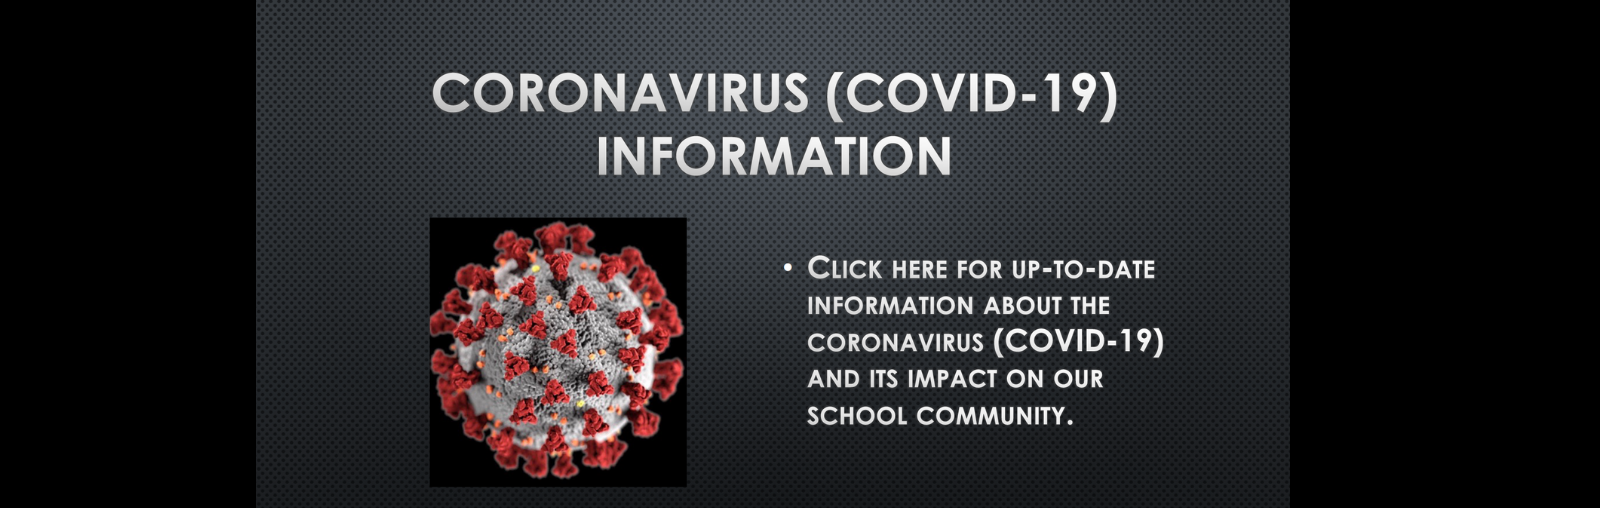 Coronavirus Information - Updated April 7, 2020